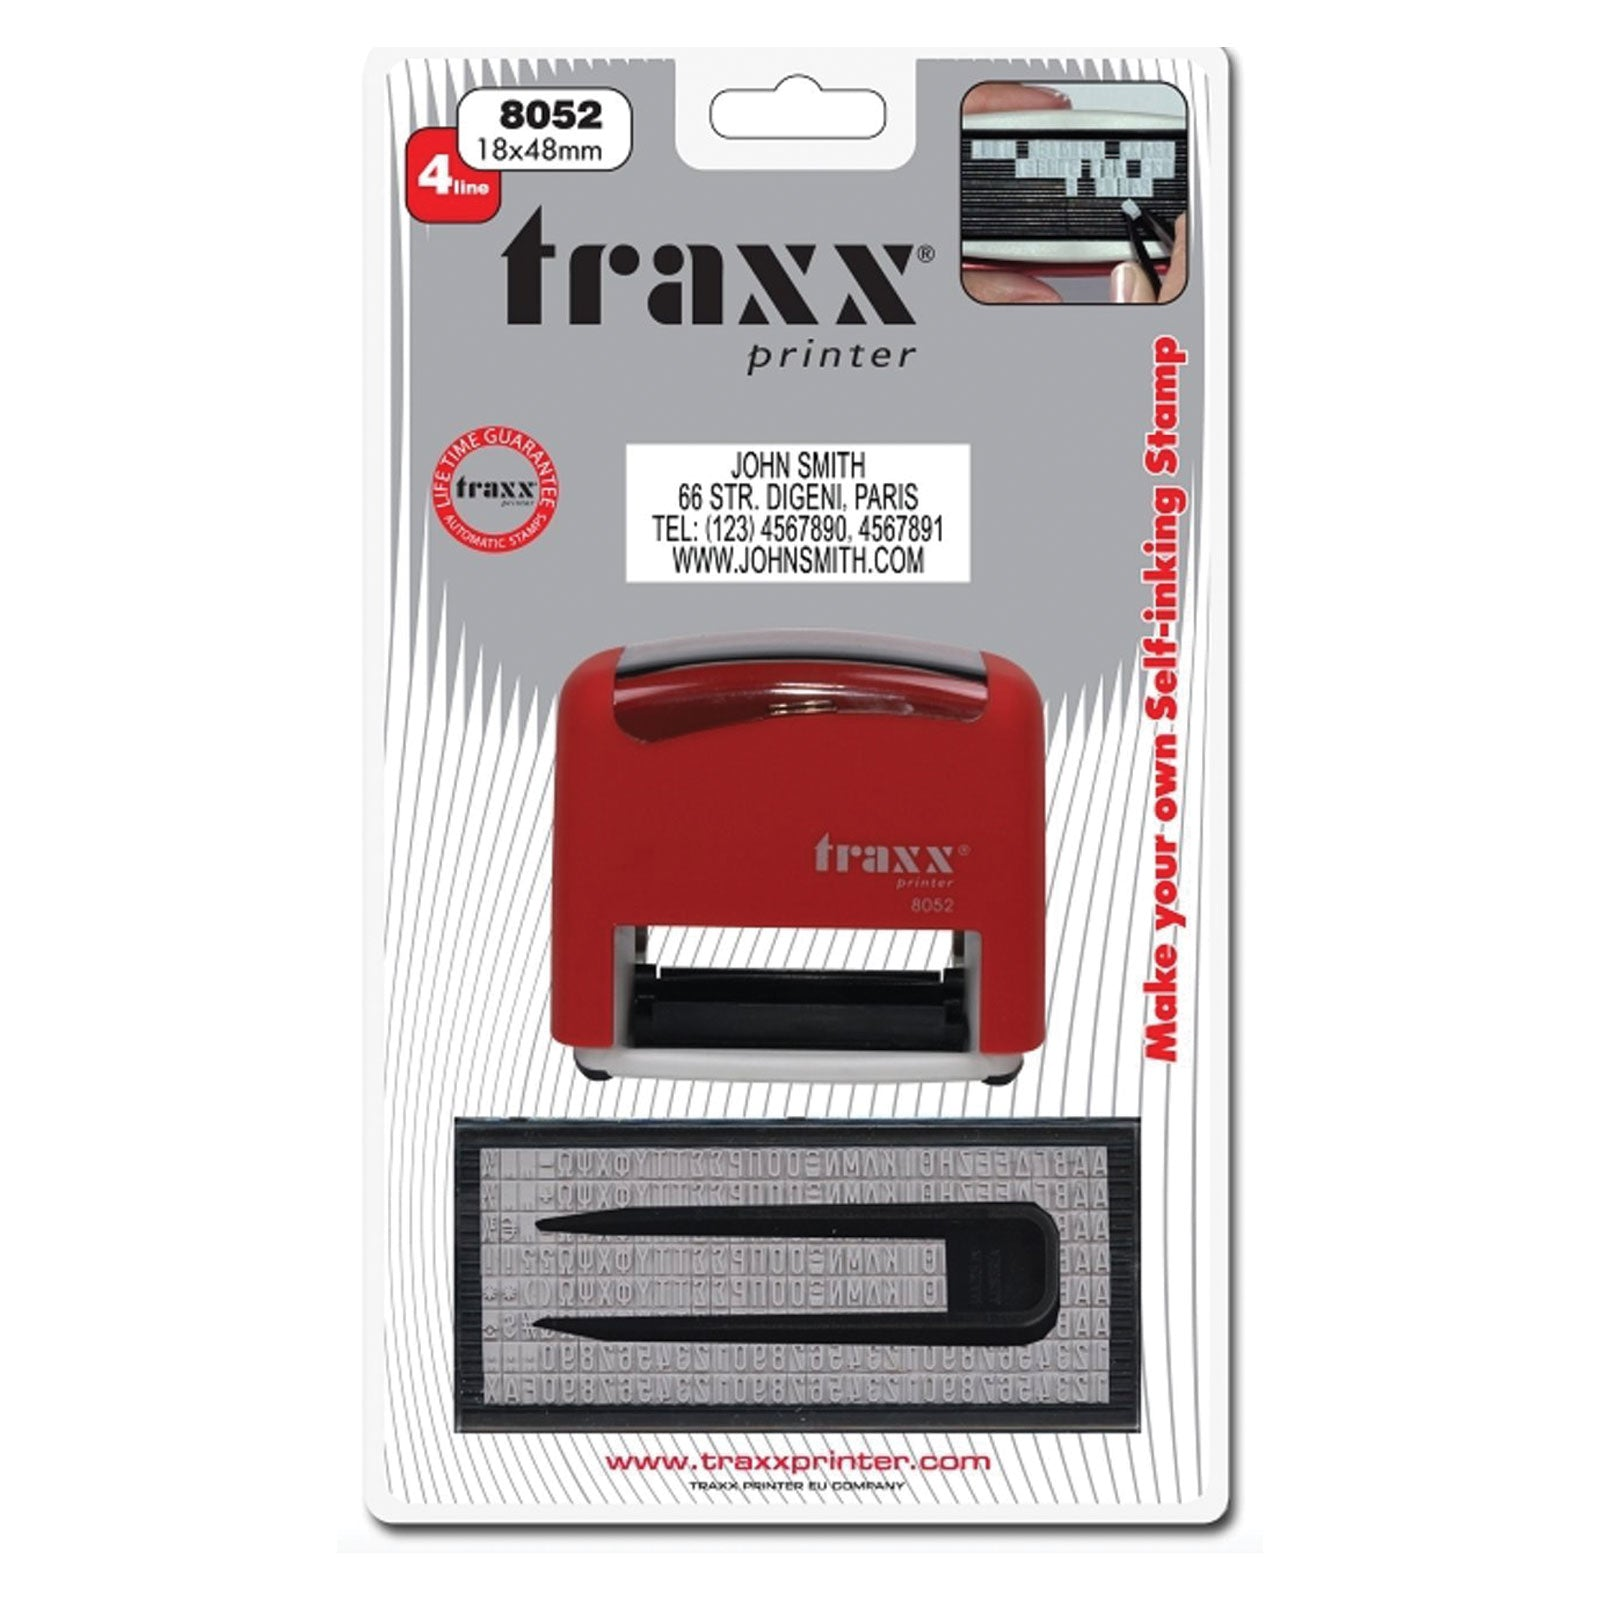 Traxx 8052 DIY Stamp Kit